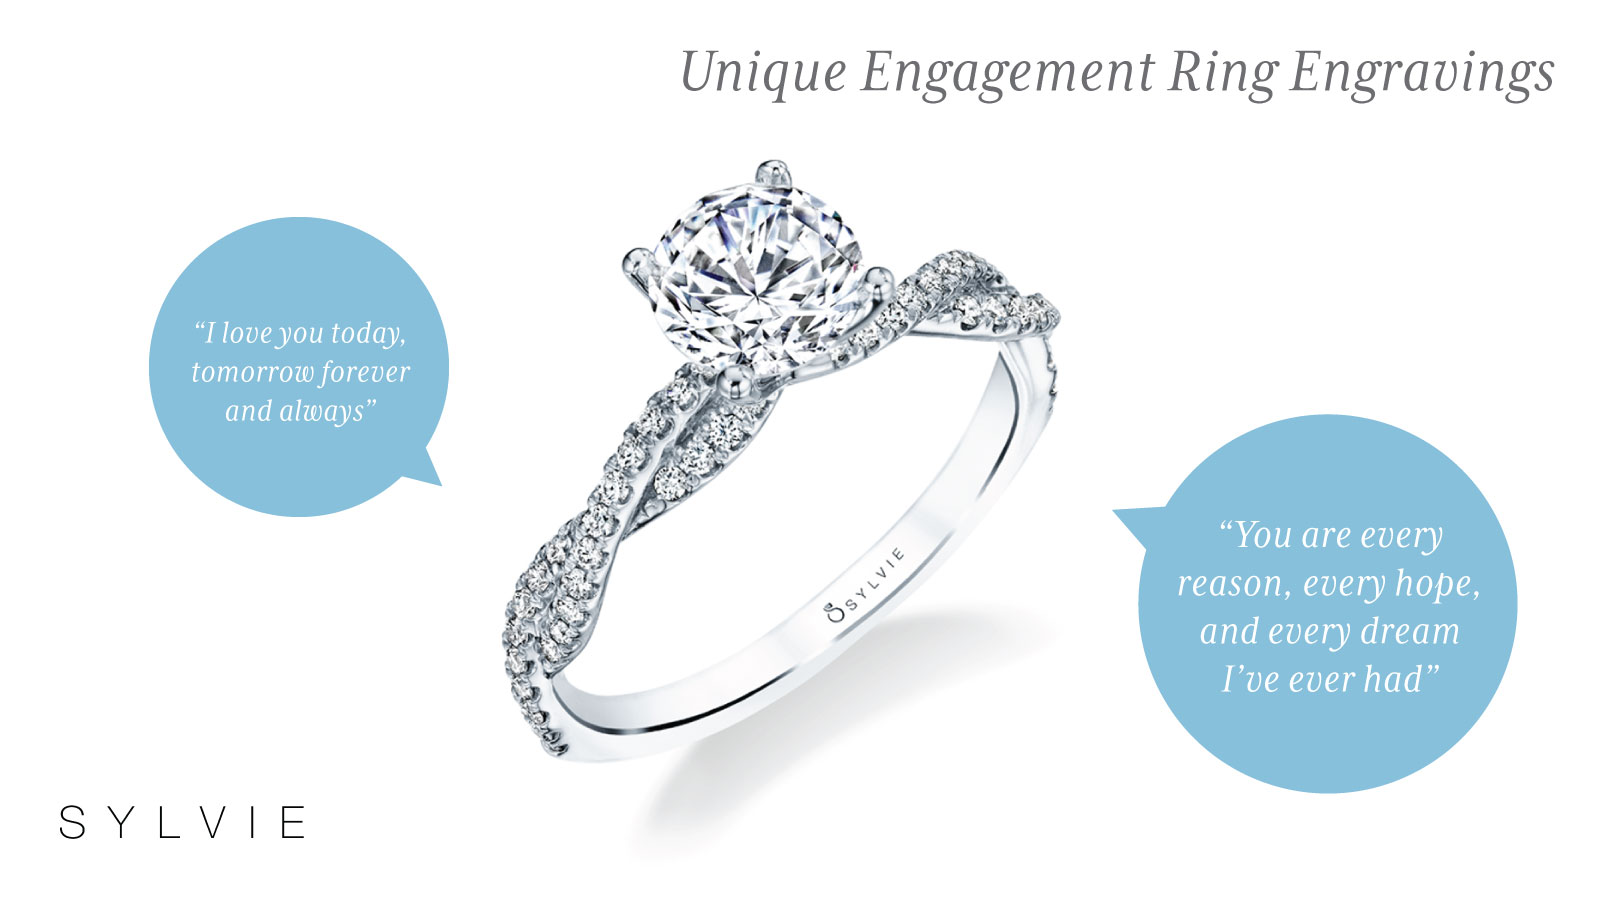 Ideas For Unique Engagement Ring Engravings